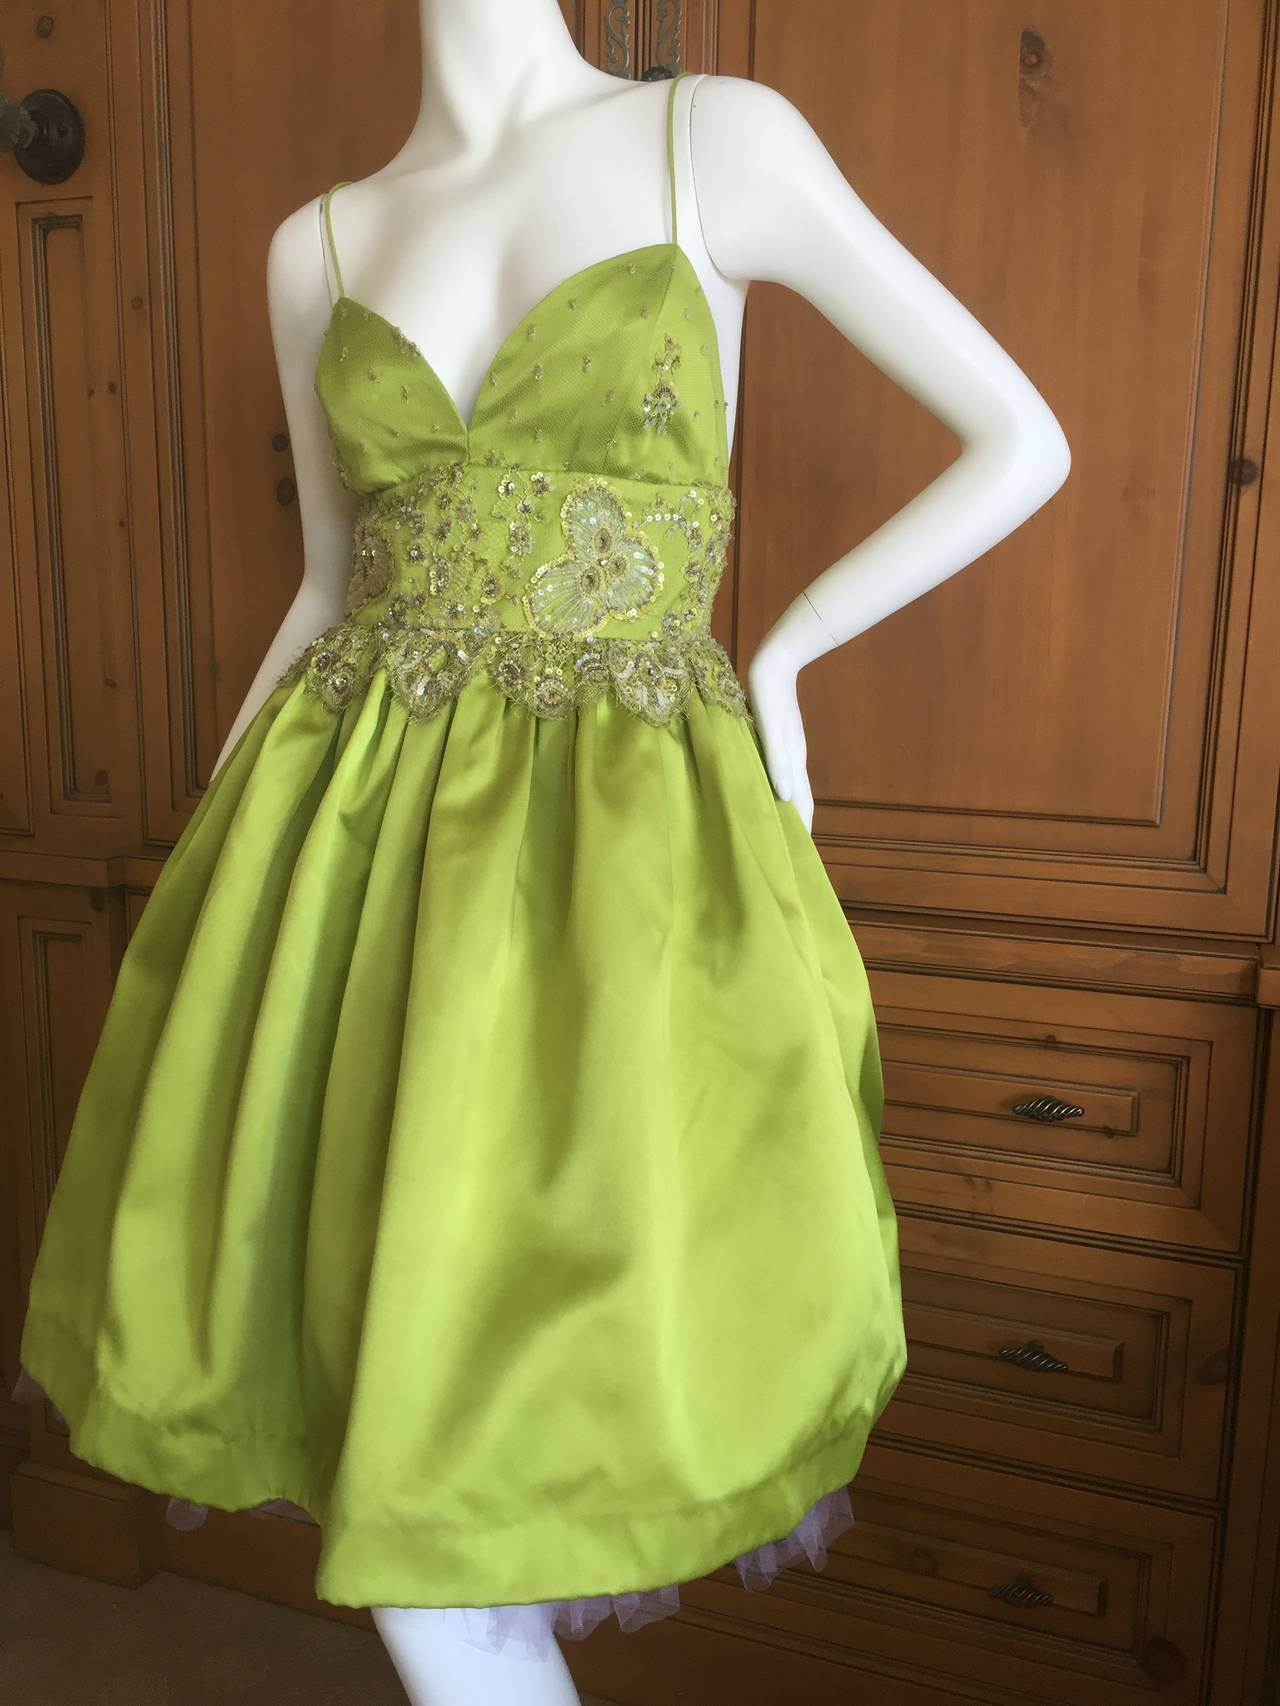 Bill Blass Vintage Green Silk Dress w Lace Embellishments 6